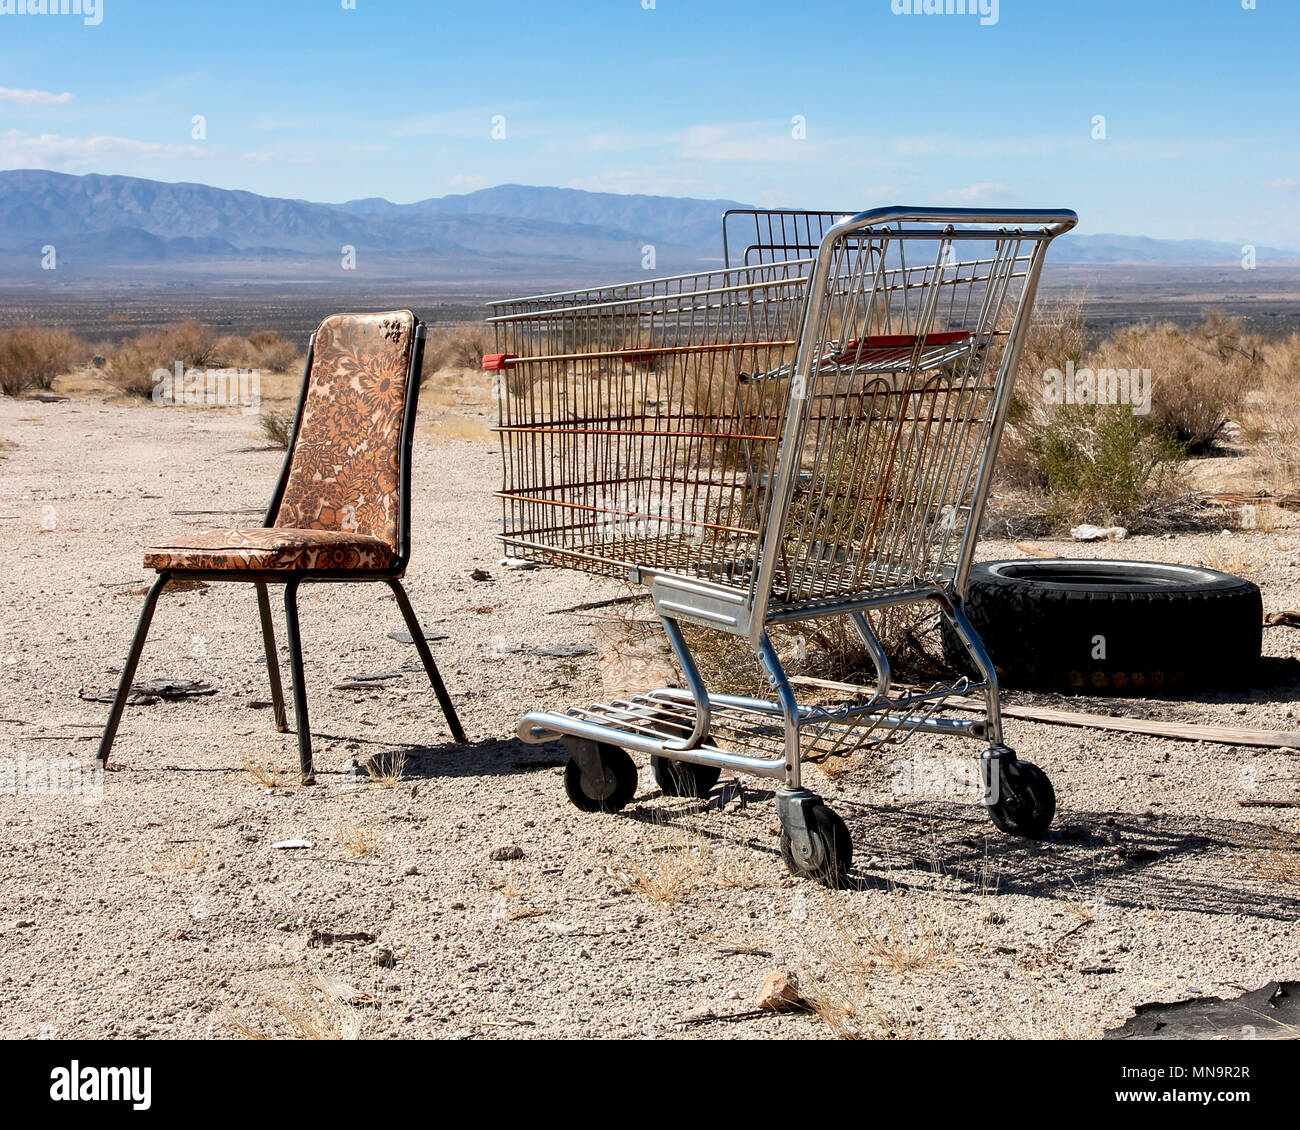 An old chair, shopping trolley, tire, an unlikely still life grouping looks across California's Wonder Valley, in the High Desert, the Mojave, USA. - Stock Image